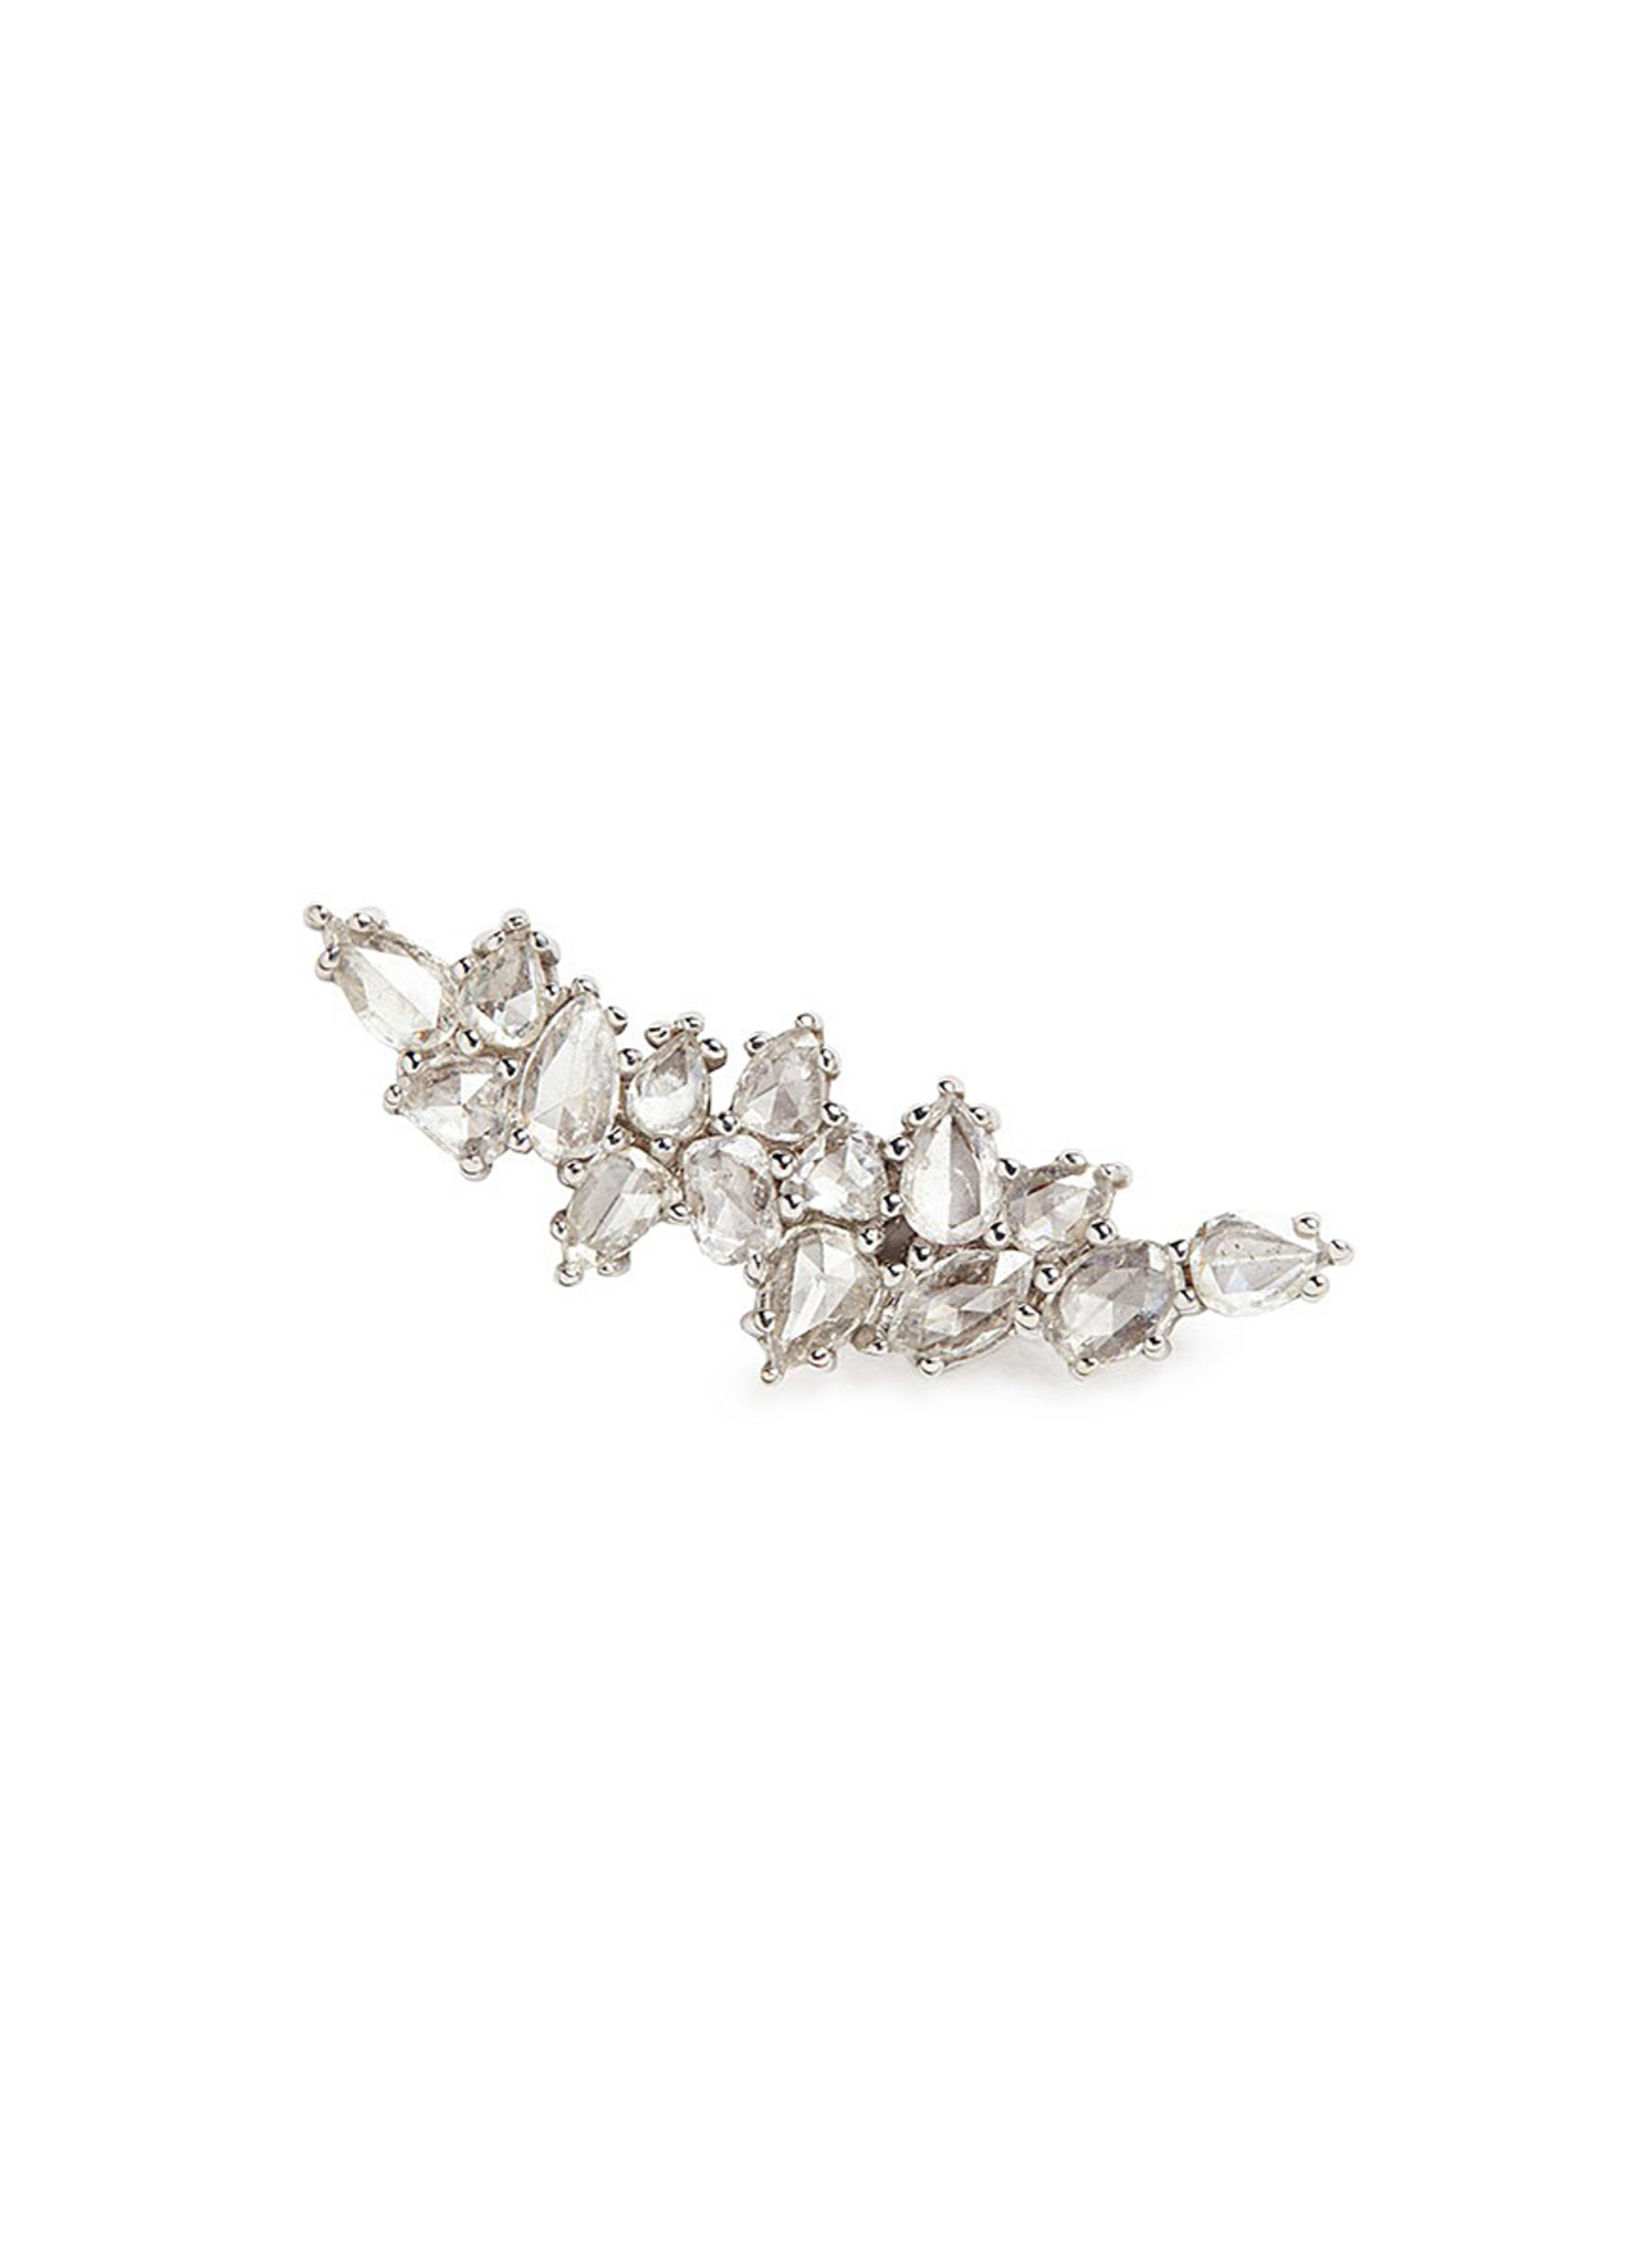 MONIQUE PÉAN 'Atelier' Diamond 18K White Gold Single Climber Earring